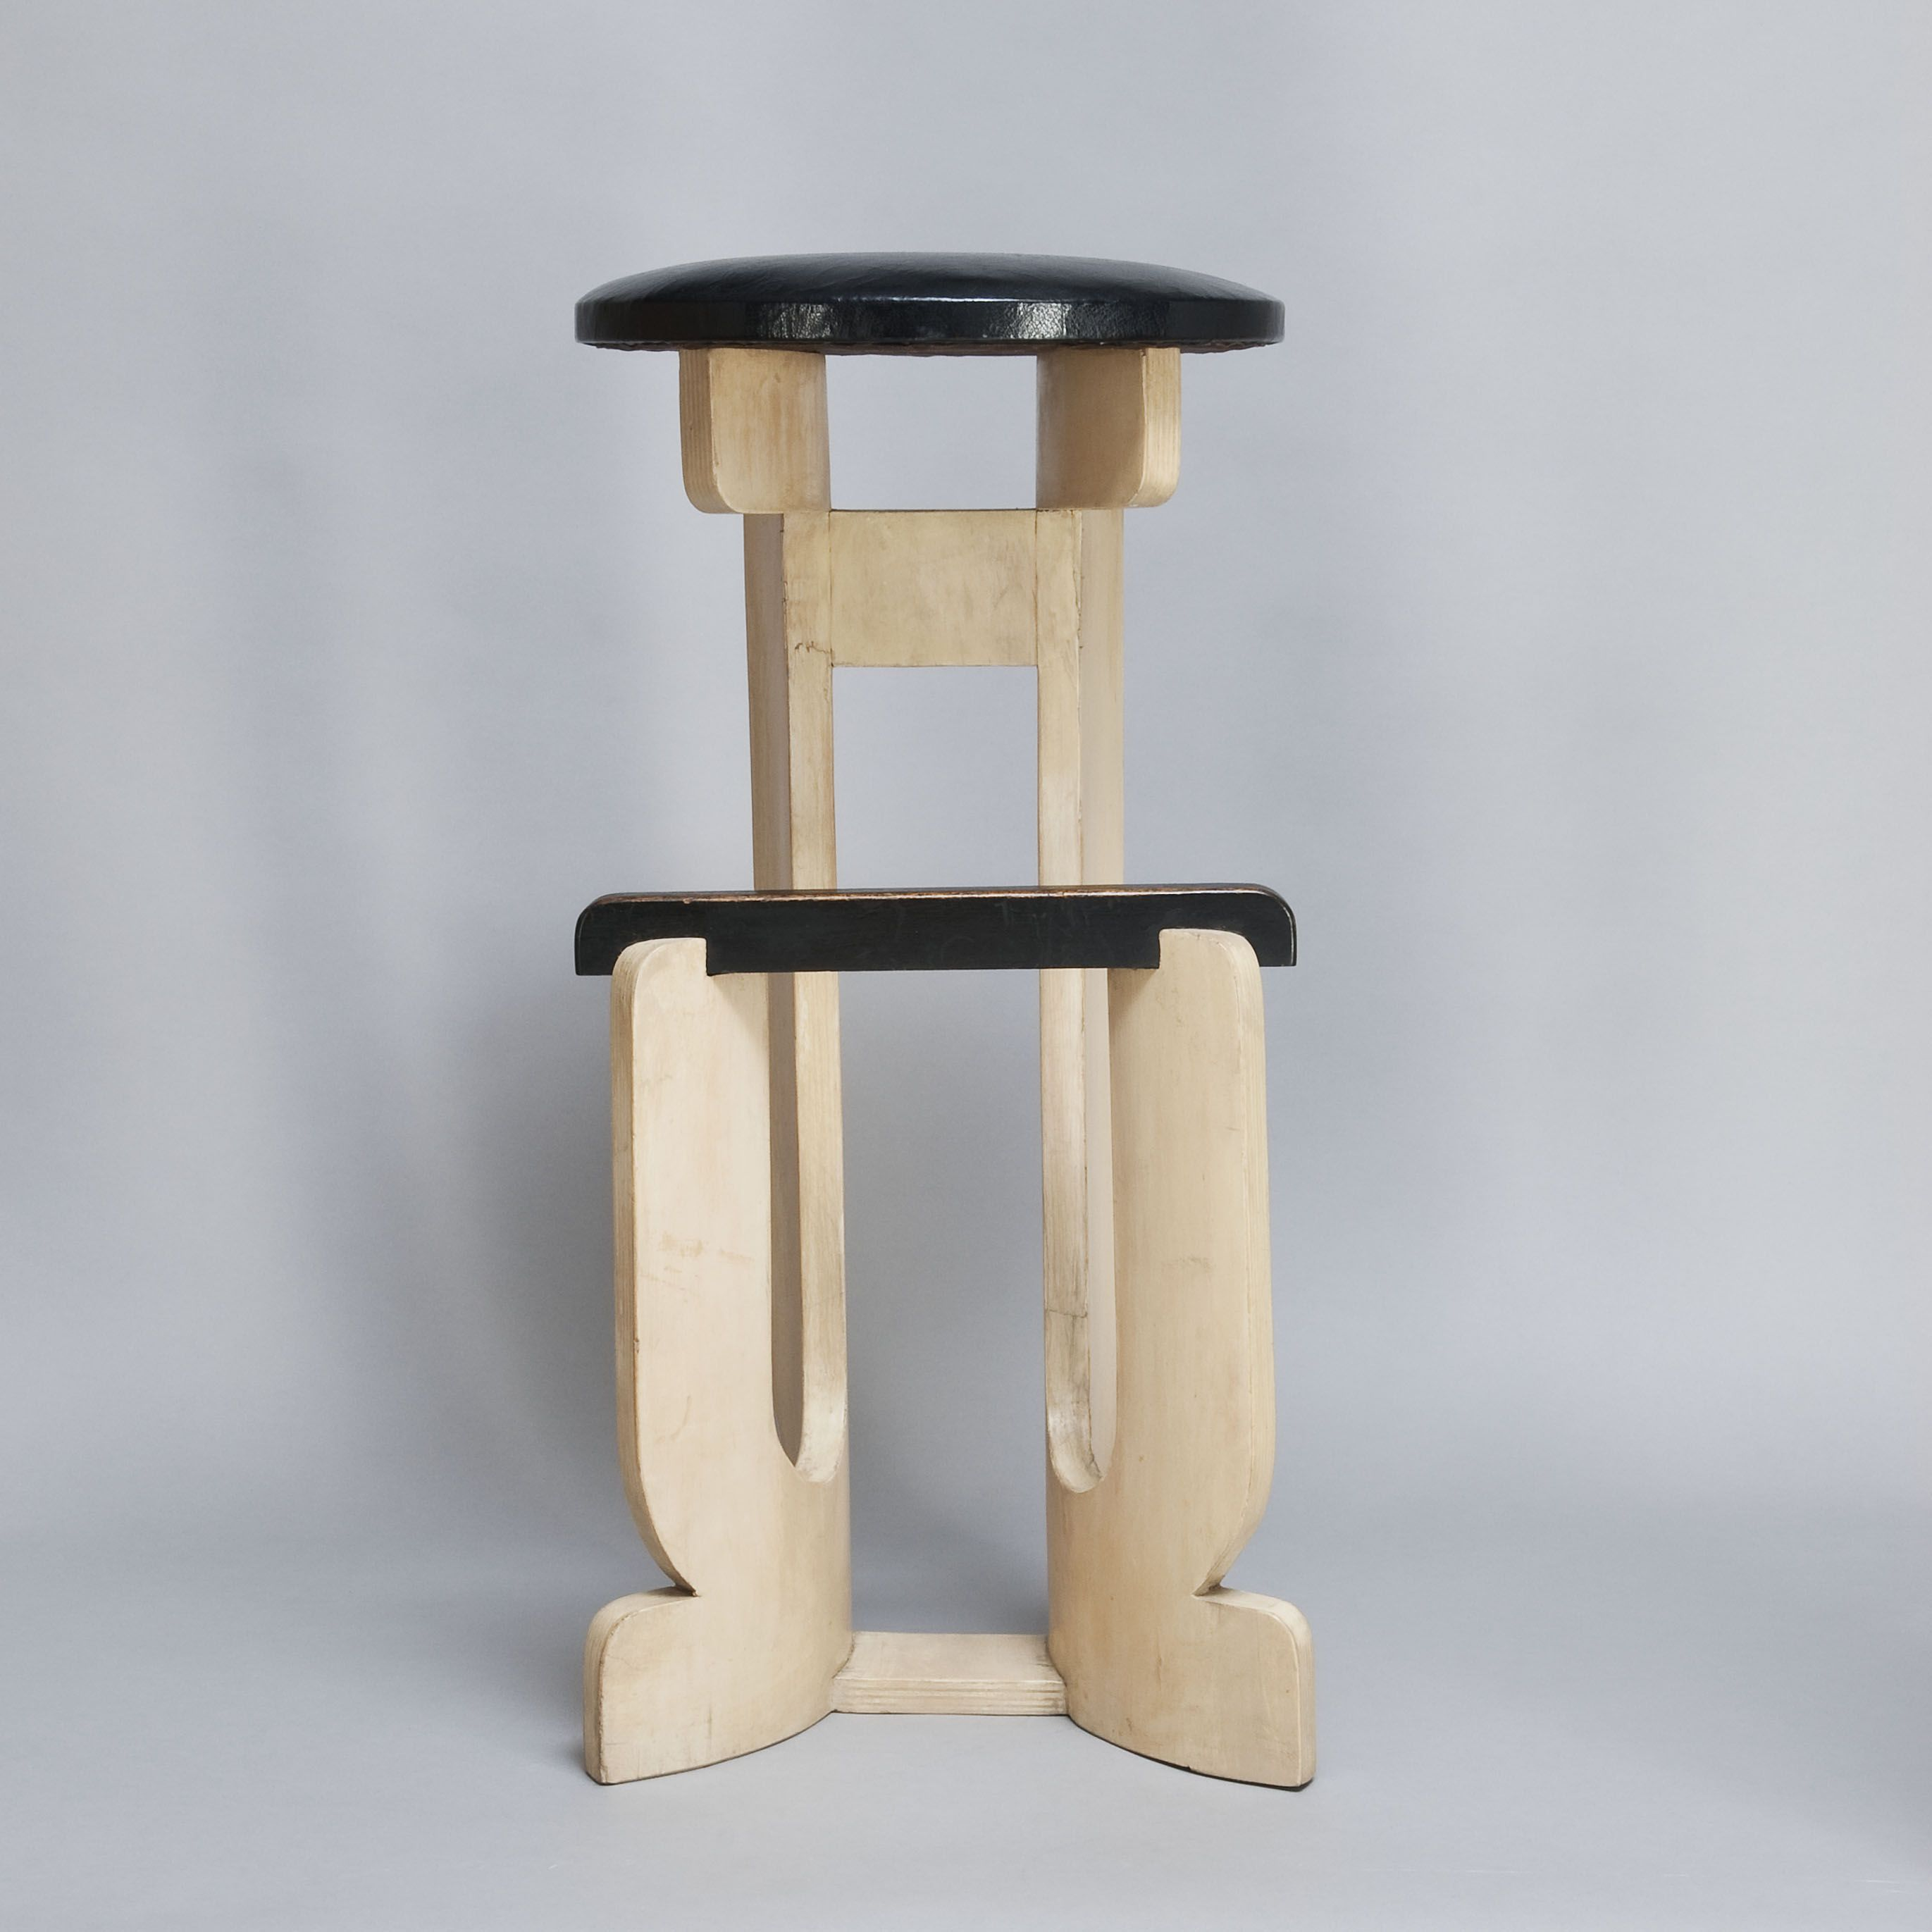 Gerald Summers Molded Birch Plywood Bar Stool 1930s